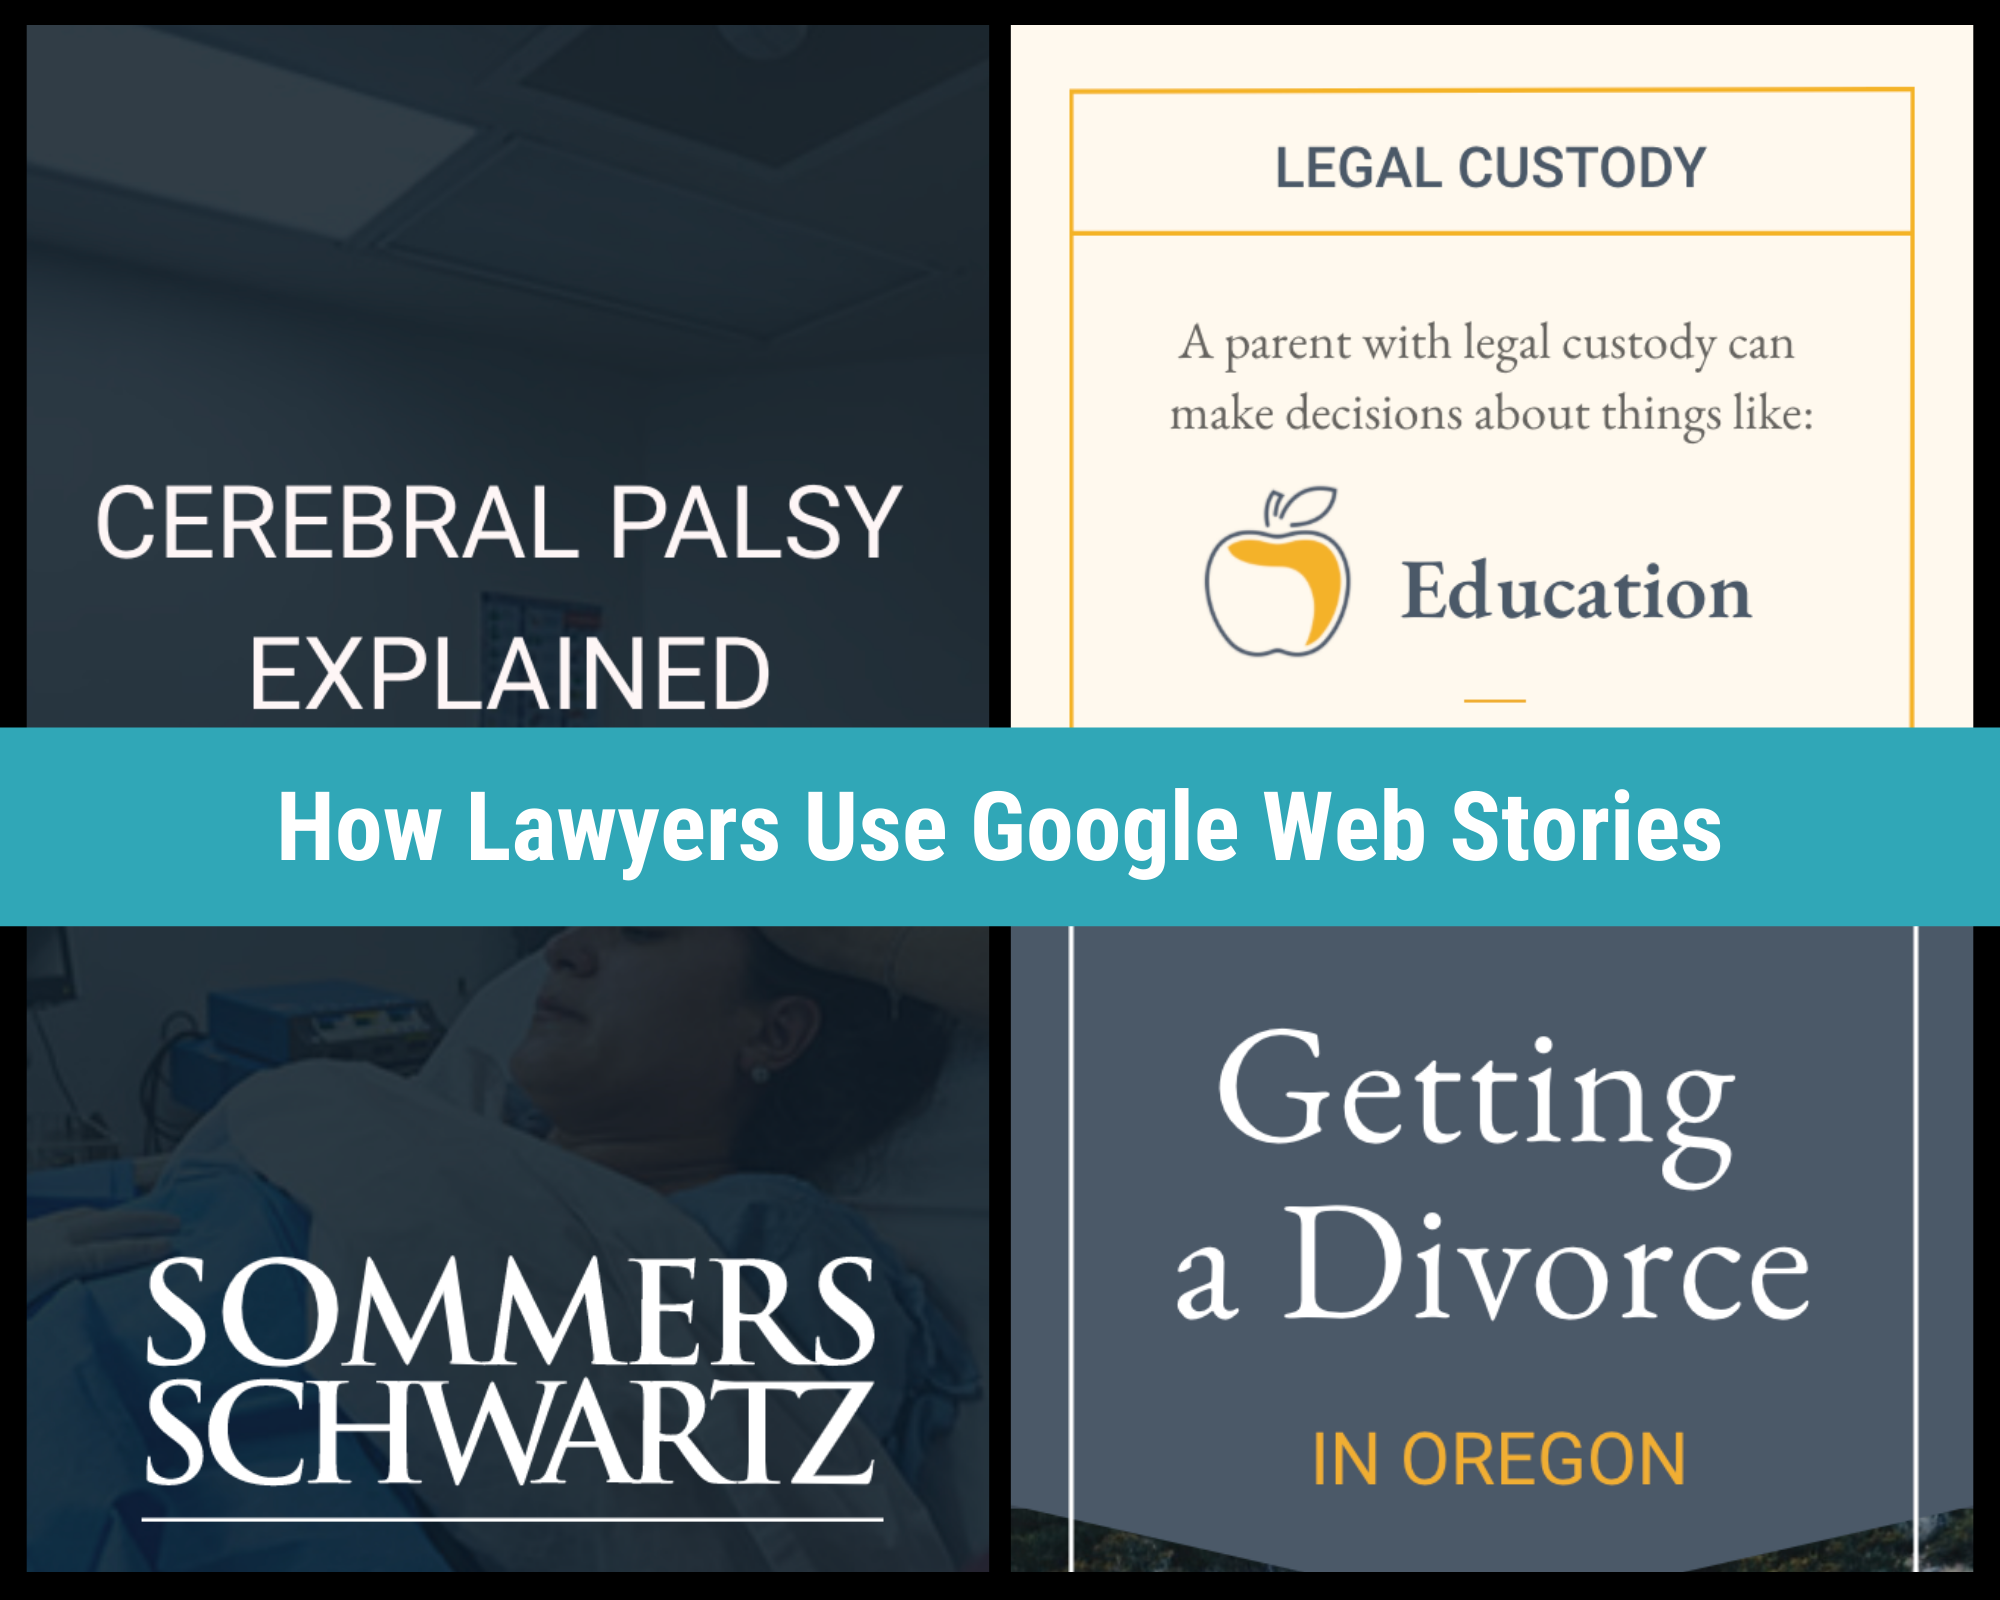 How Law Firms Are Using Google Web Stories